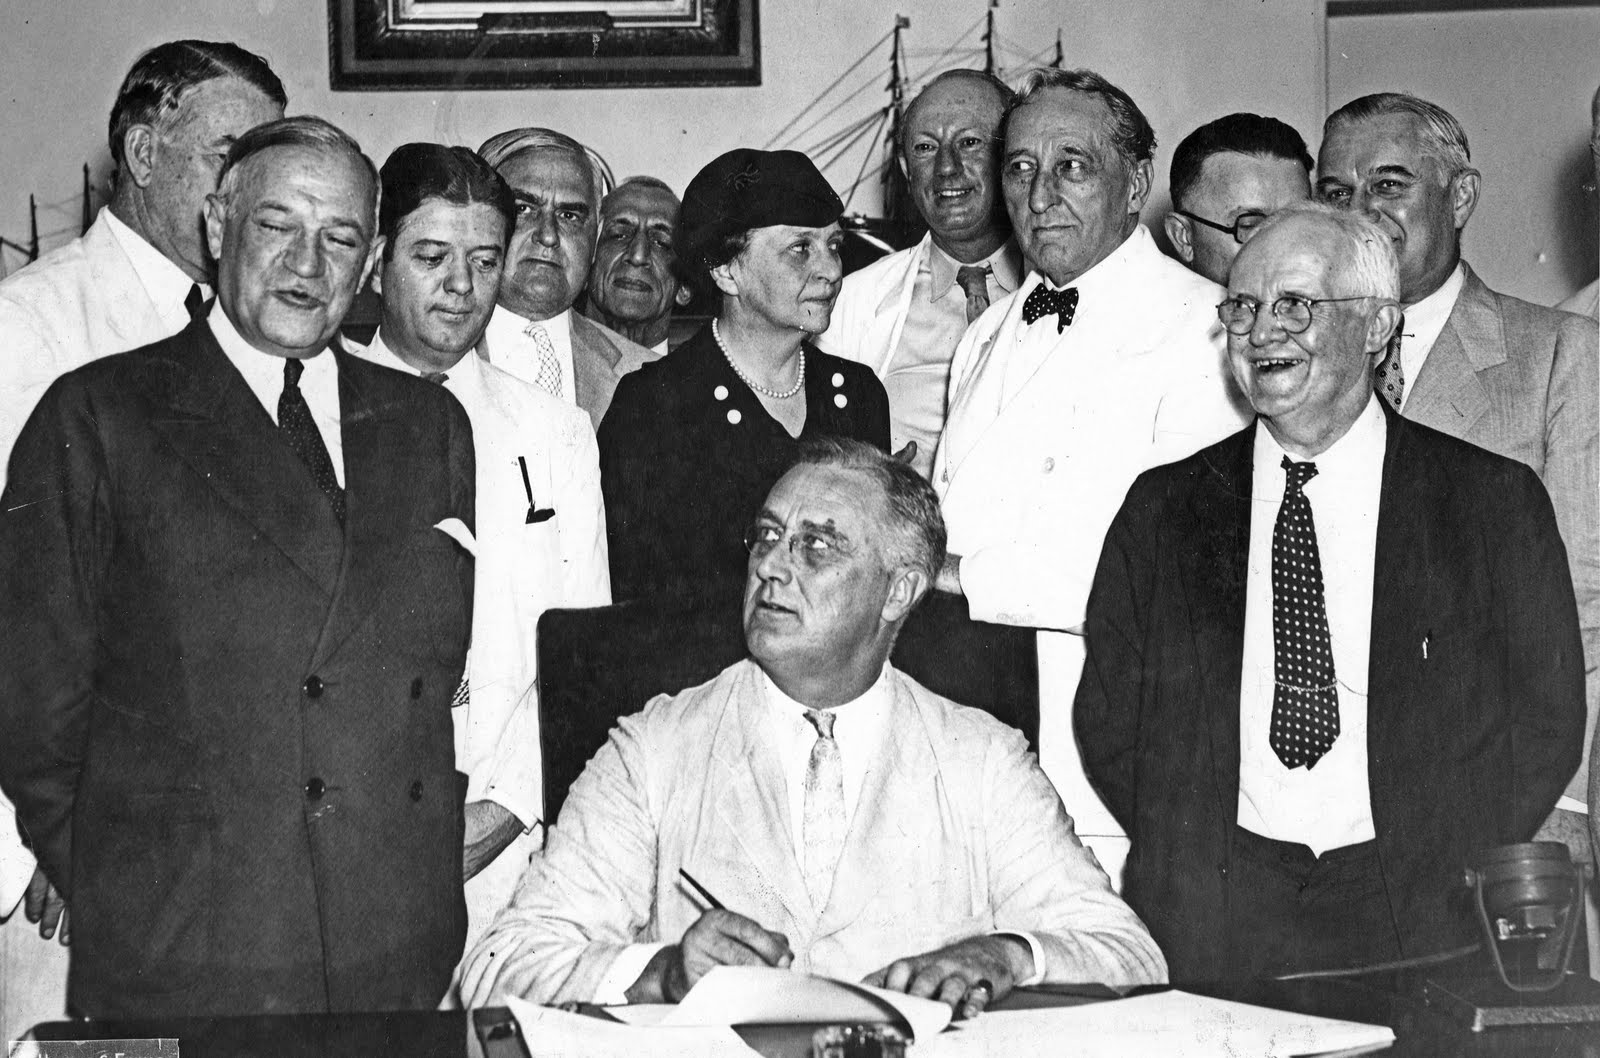 social security act of 1935 The social security act is a law enacted in 1935 to create a system of transfer payments in which younger, working people support older, retired people.